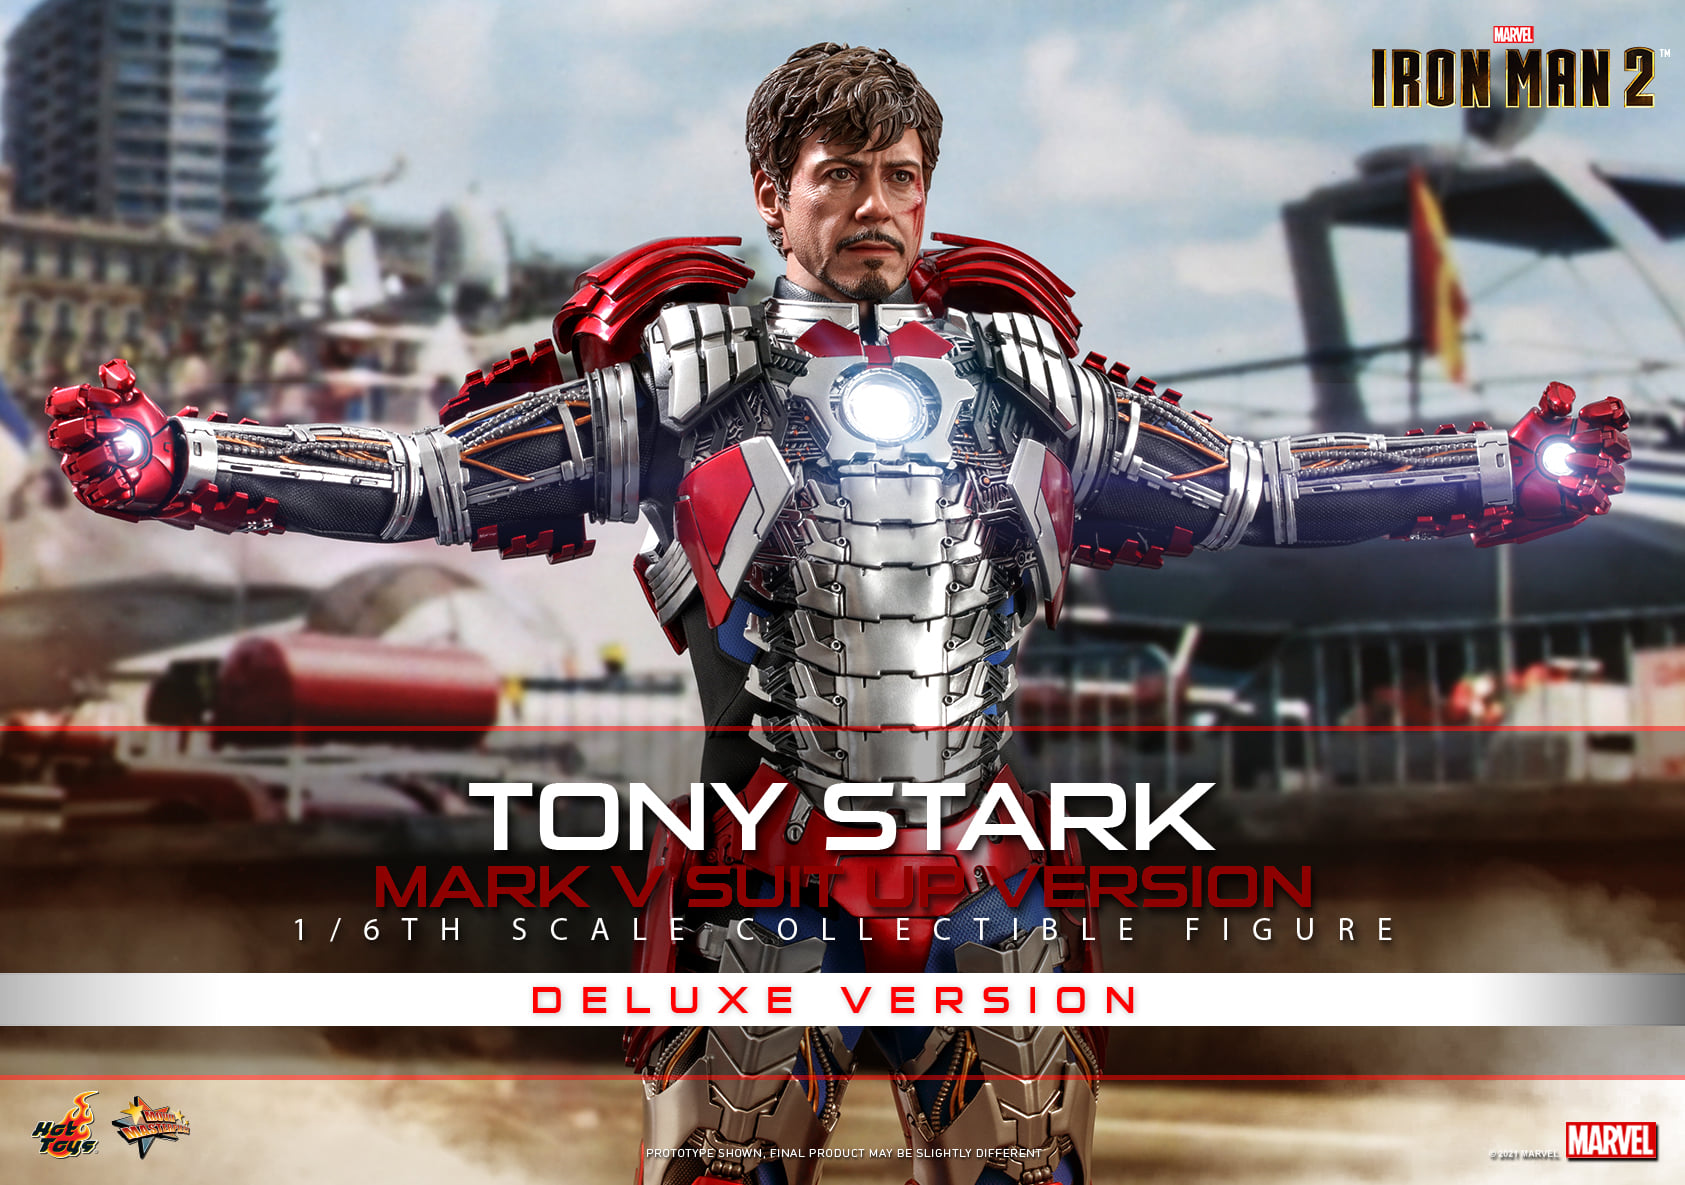 Pre-Order Hot Toys Marvel Iron Man 2 Tony Stark  MK V DLX Figure